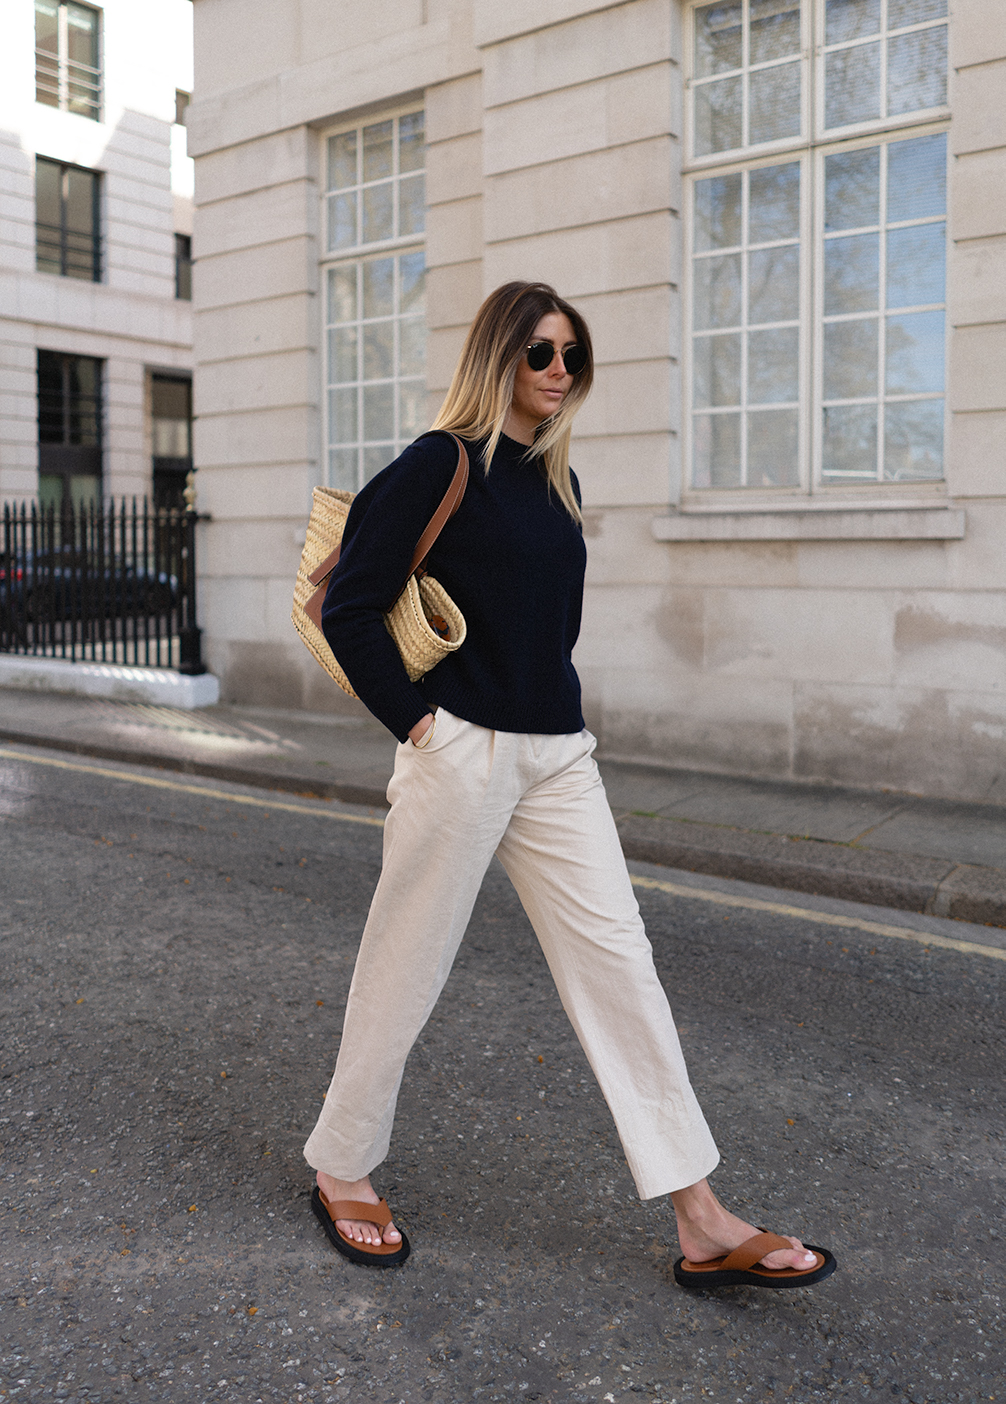 Emma Hill wears navy sweater jumper, beige chino trousers, tan thong sandals, Loewe basket bag. Chic basic Spring outfit